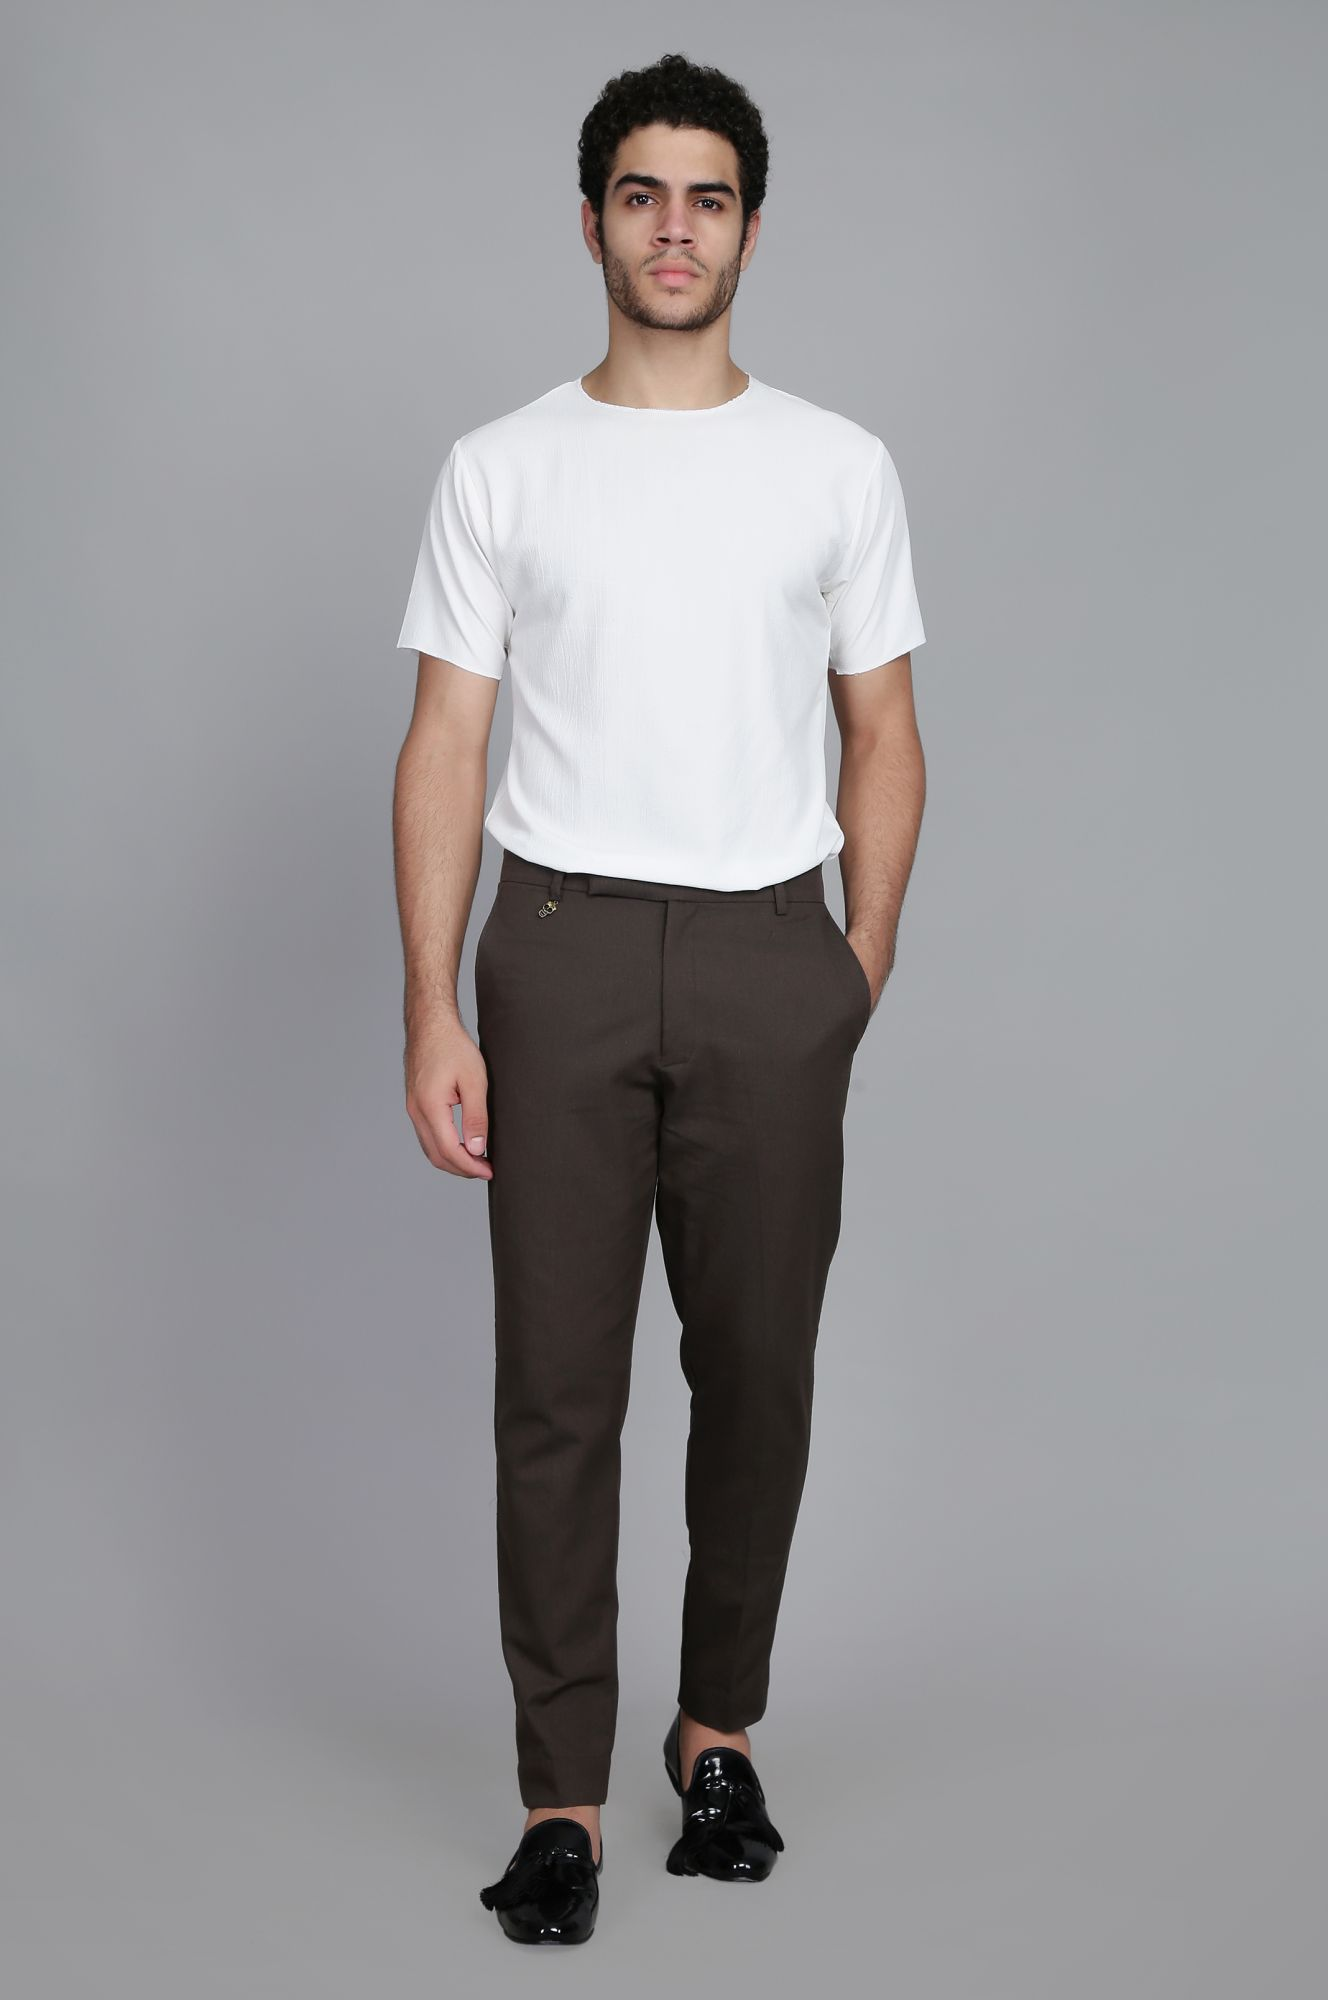 Carob Tailored fit Pants